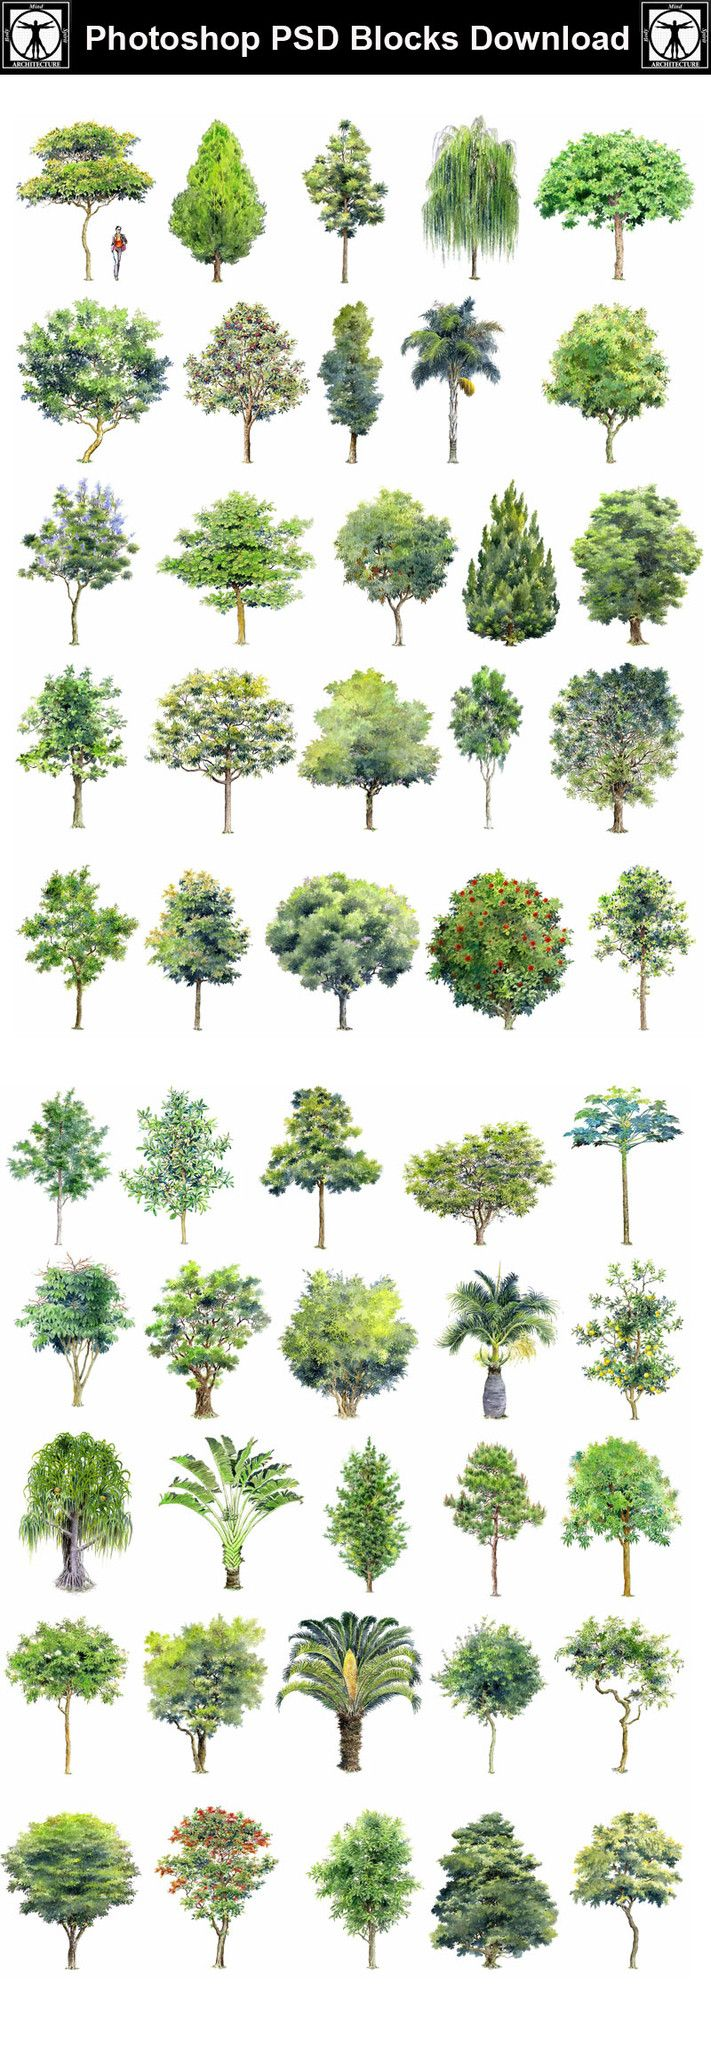 Hand-painted PSD Tree Blocks 2 – CAD Design | Free CAD Blocks,Drawings,Details